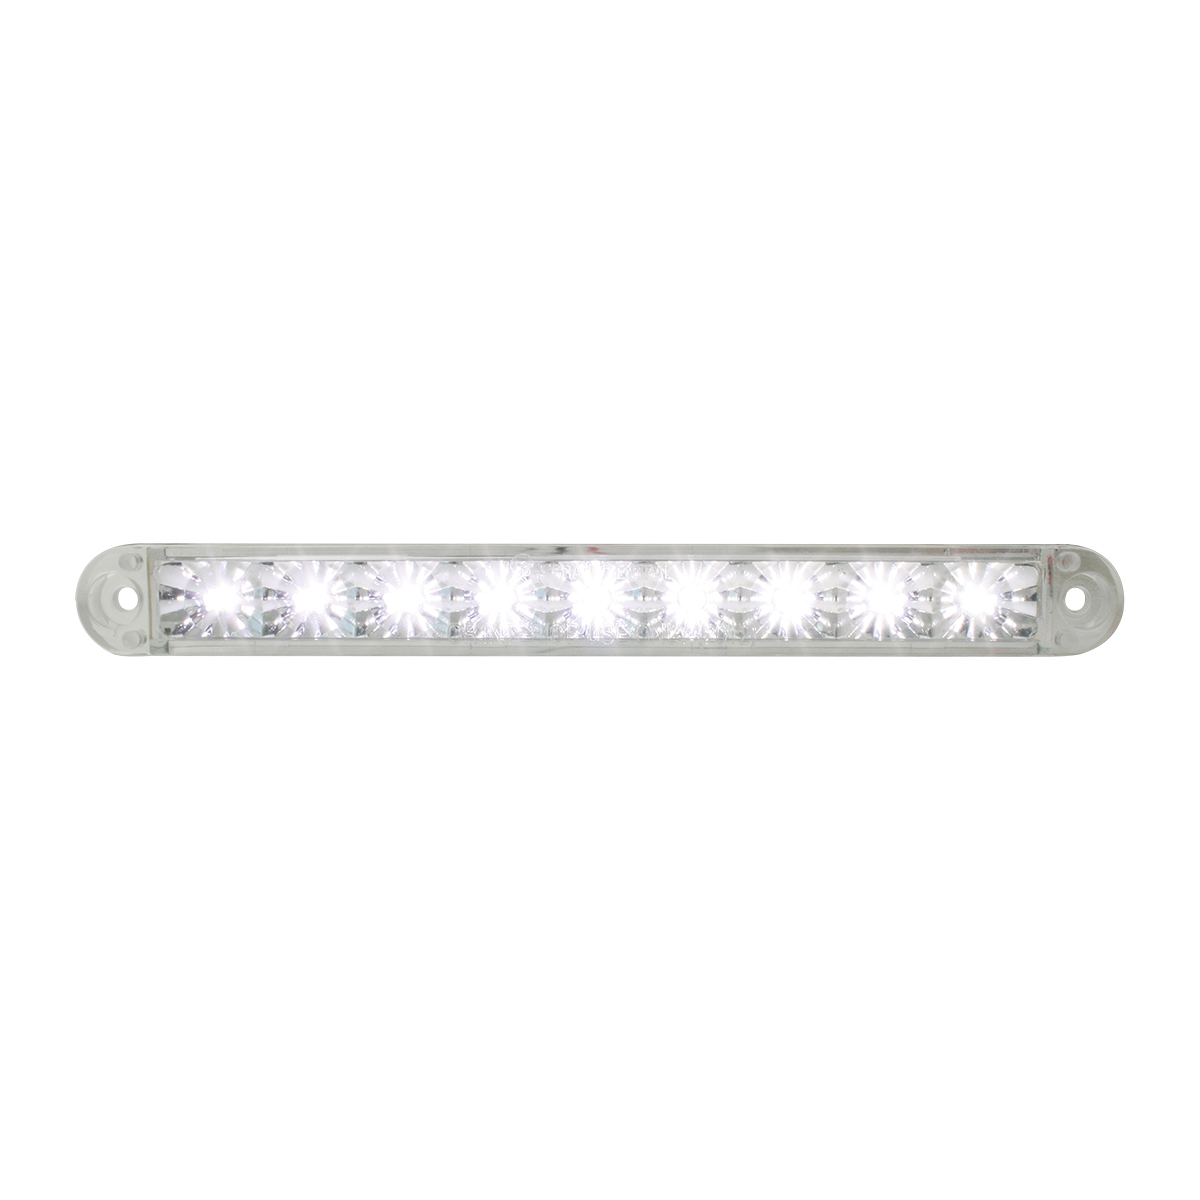 "76144 6.5"" Flush Mount LED Light Bar"